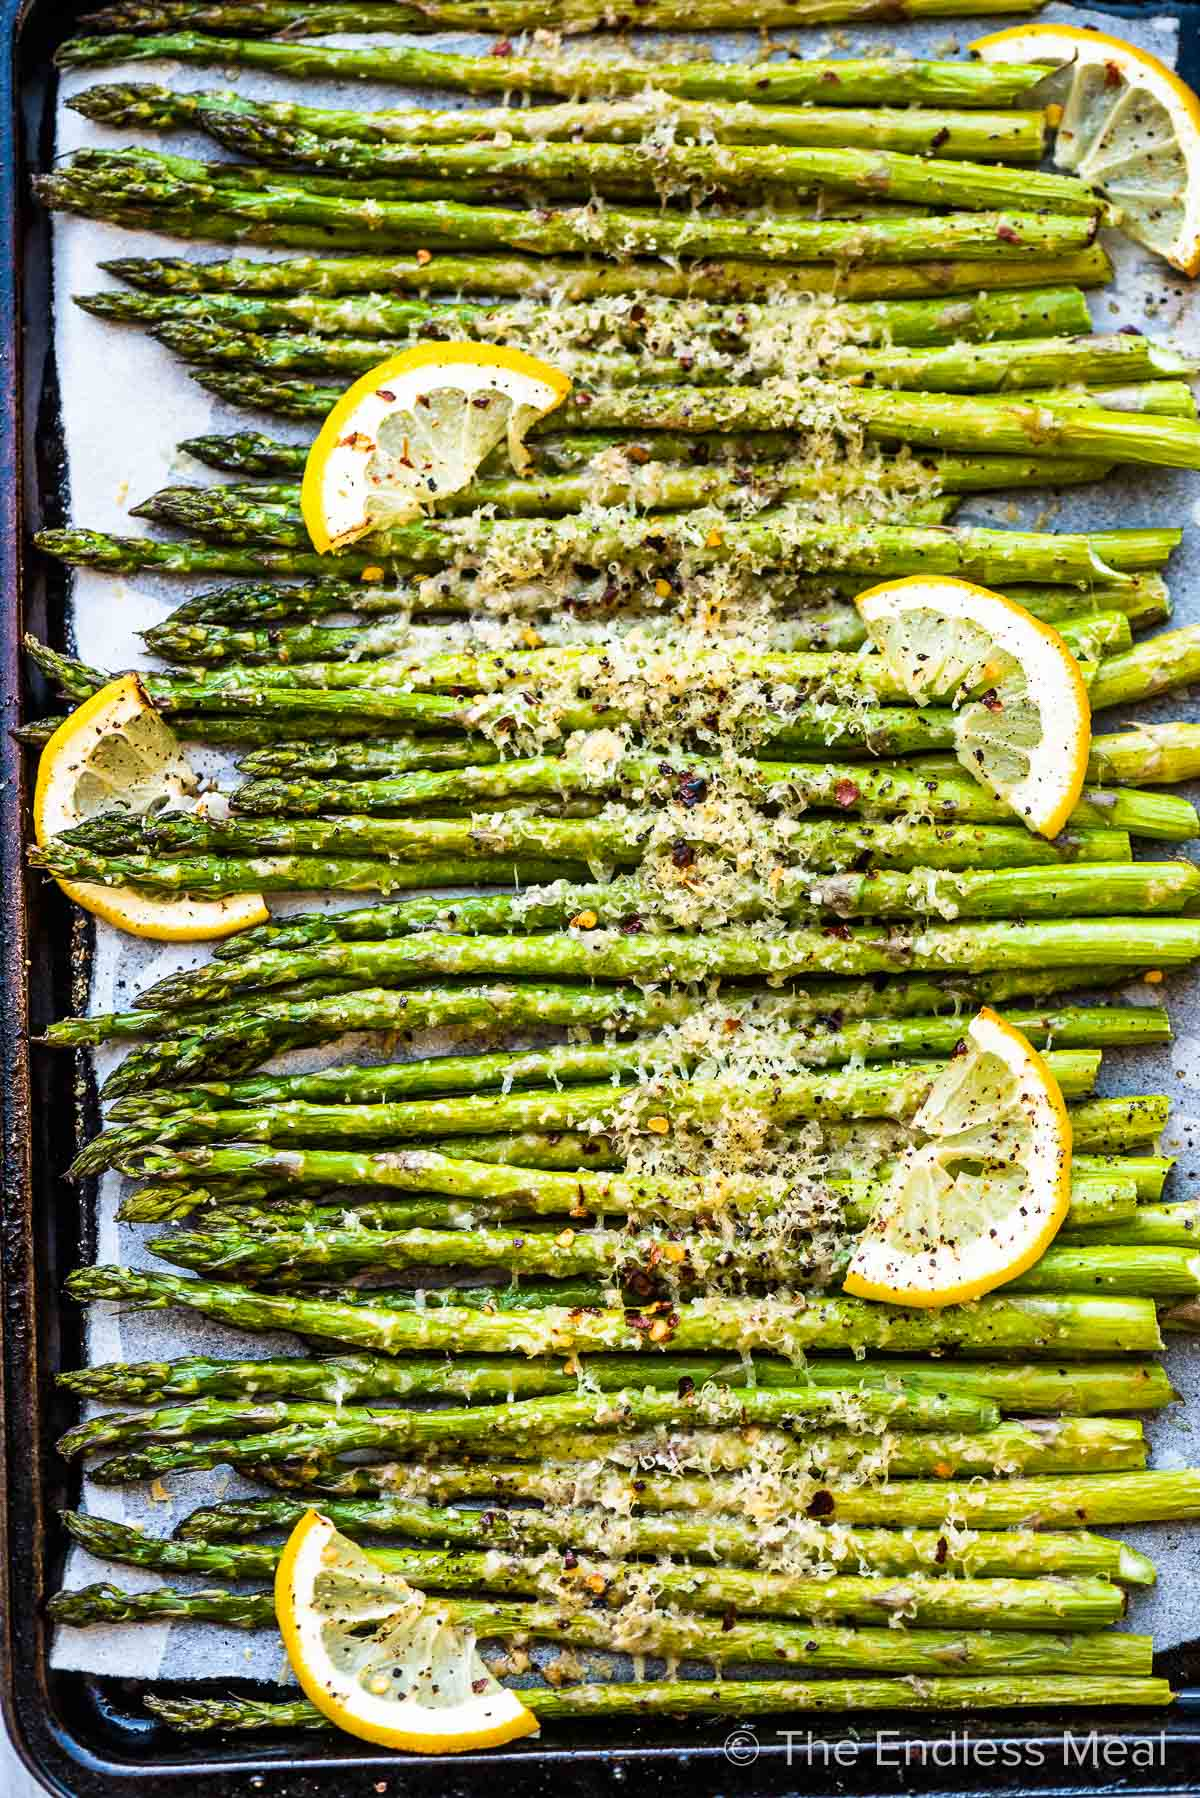 A baking sheet with roasted asparagus lined up on it.